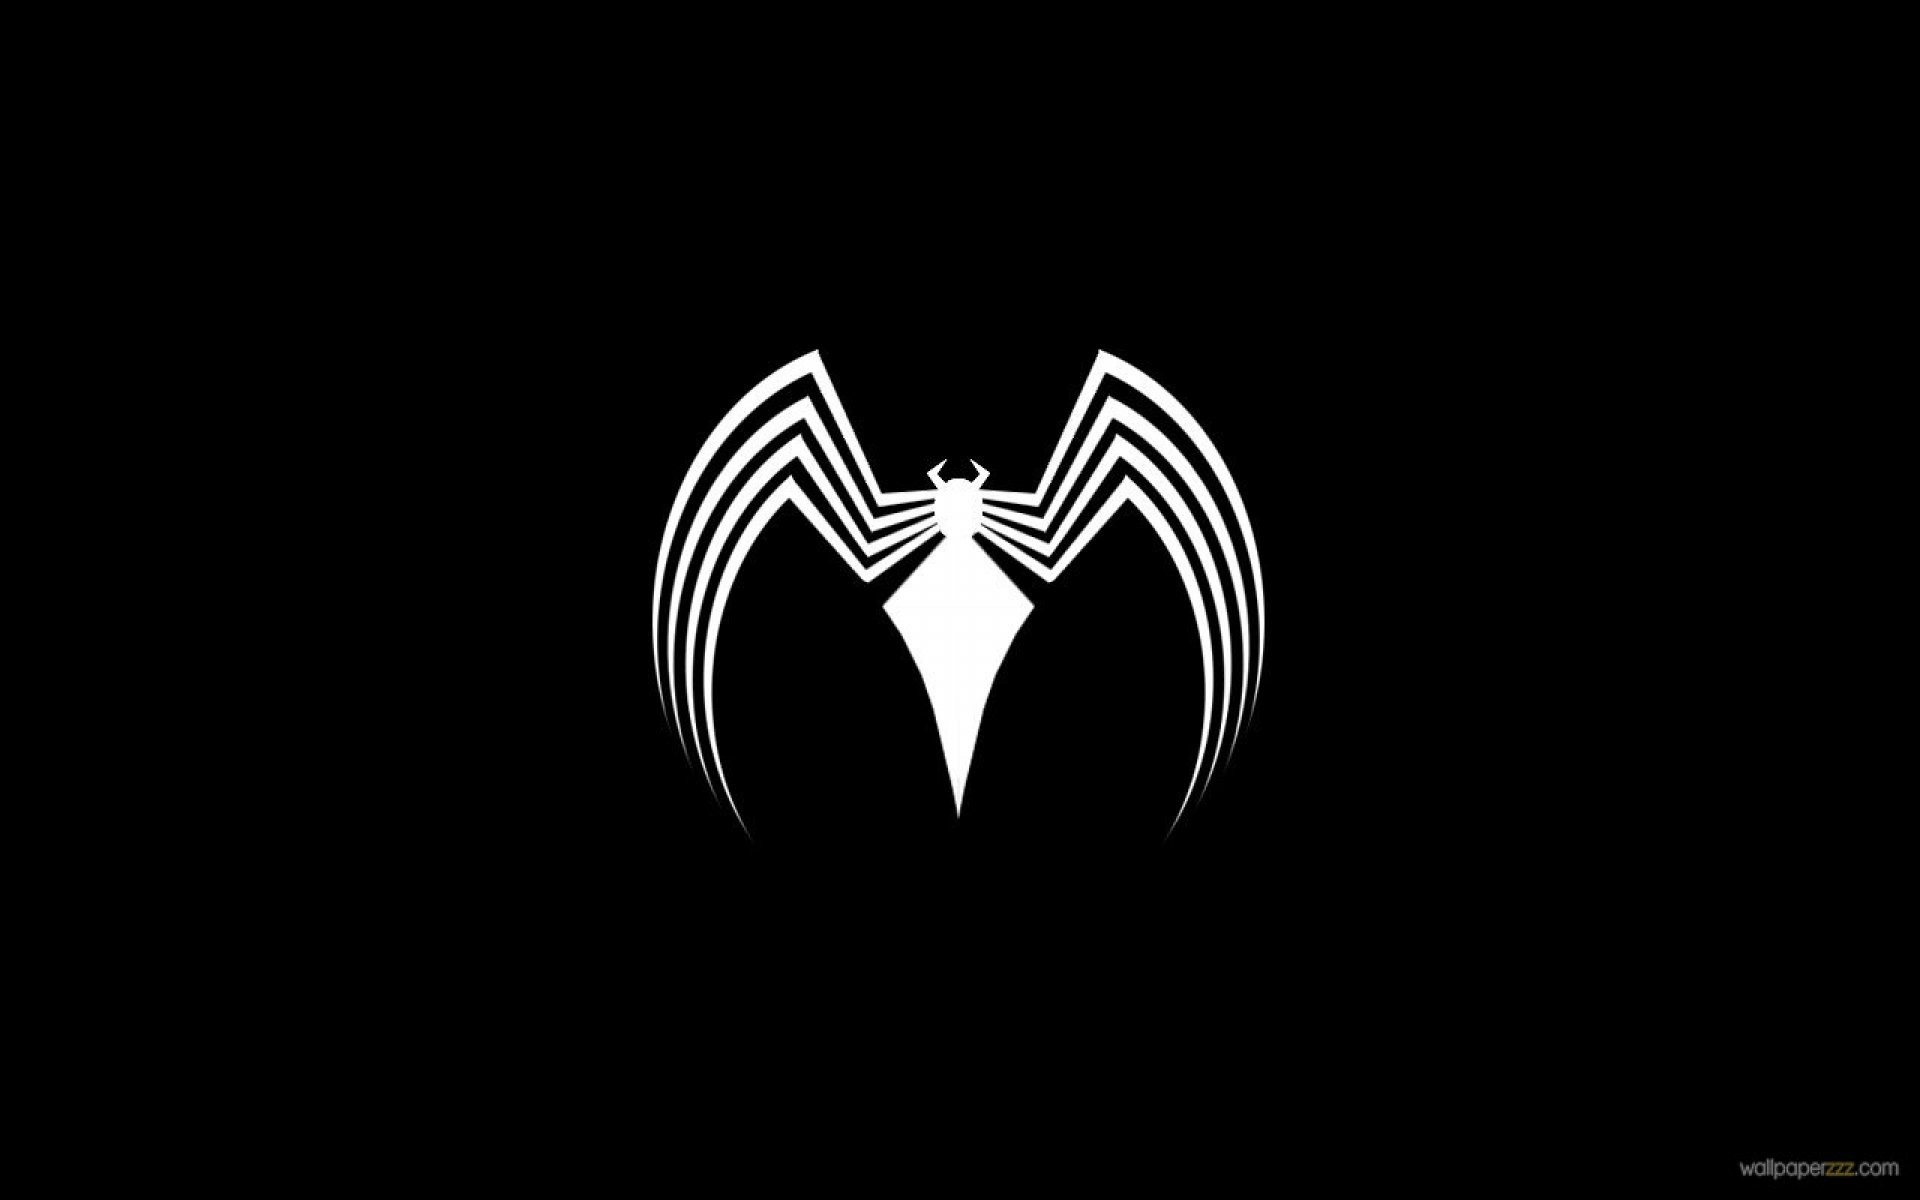 Spiderman venom wallpaper wallpapertag - Black and white spiderman wallpaper ...